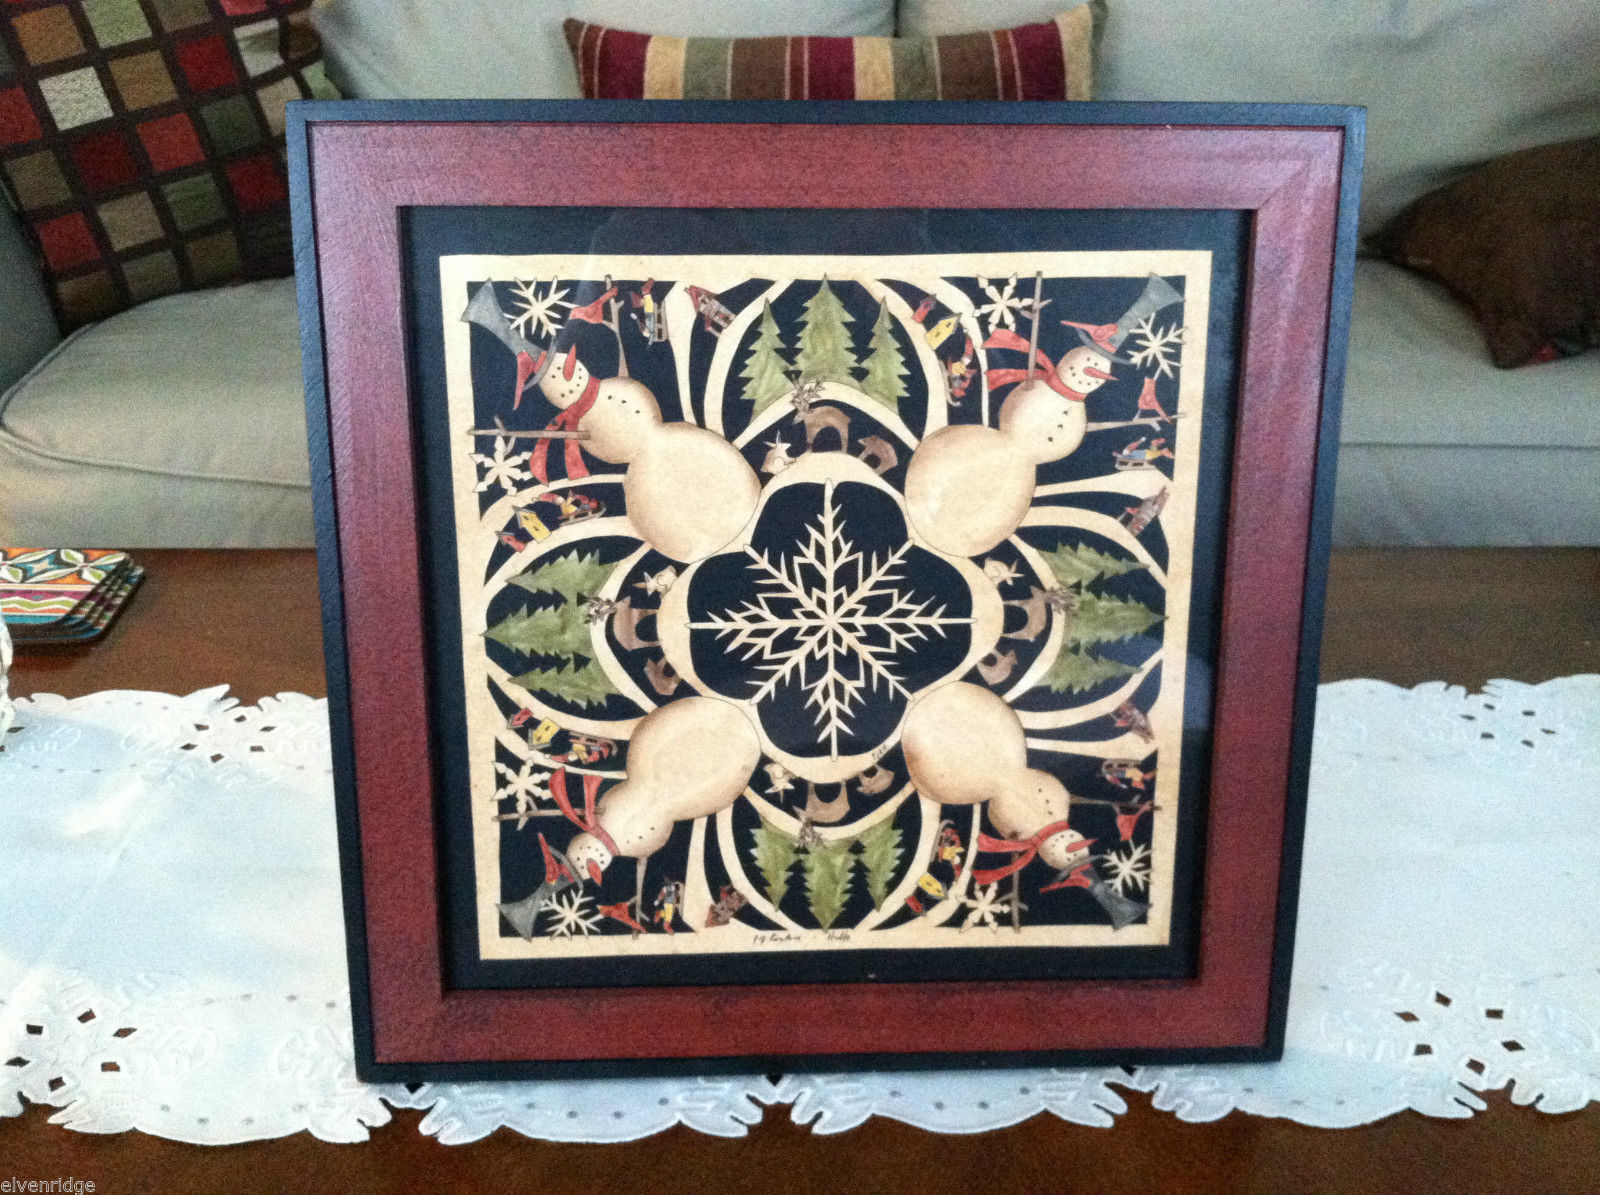 Framed Snowman Snowflake Kaleidoscope Christmas Paper Cutting Picture